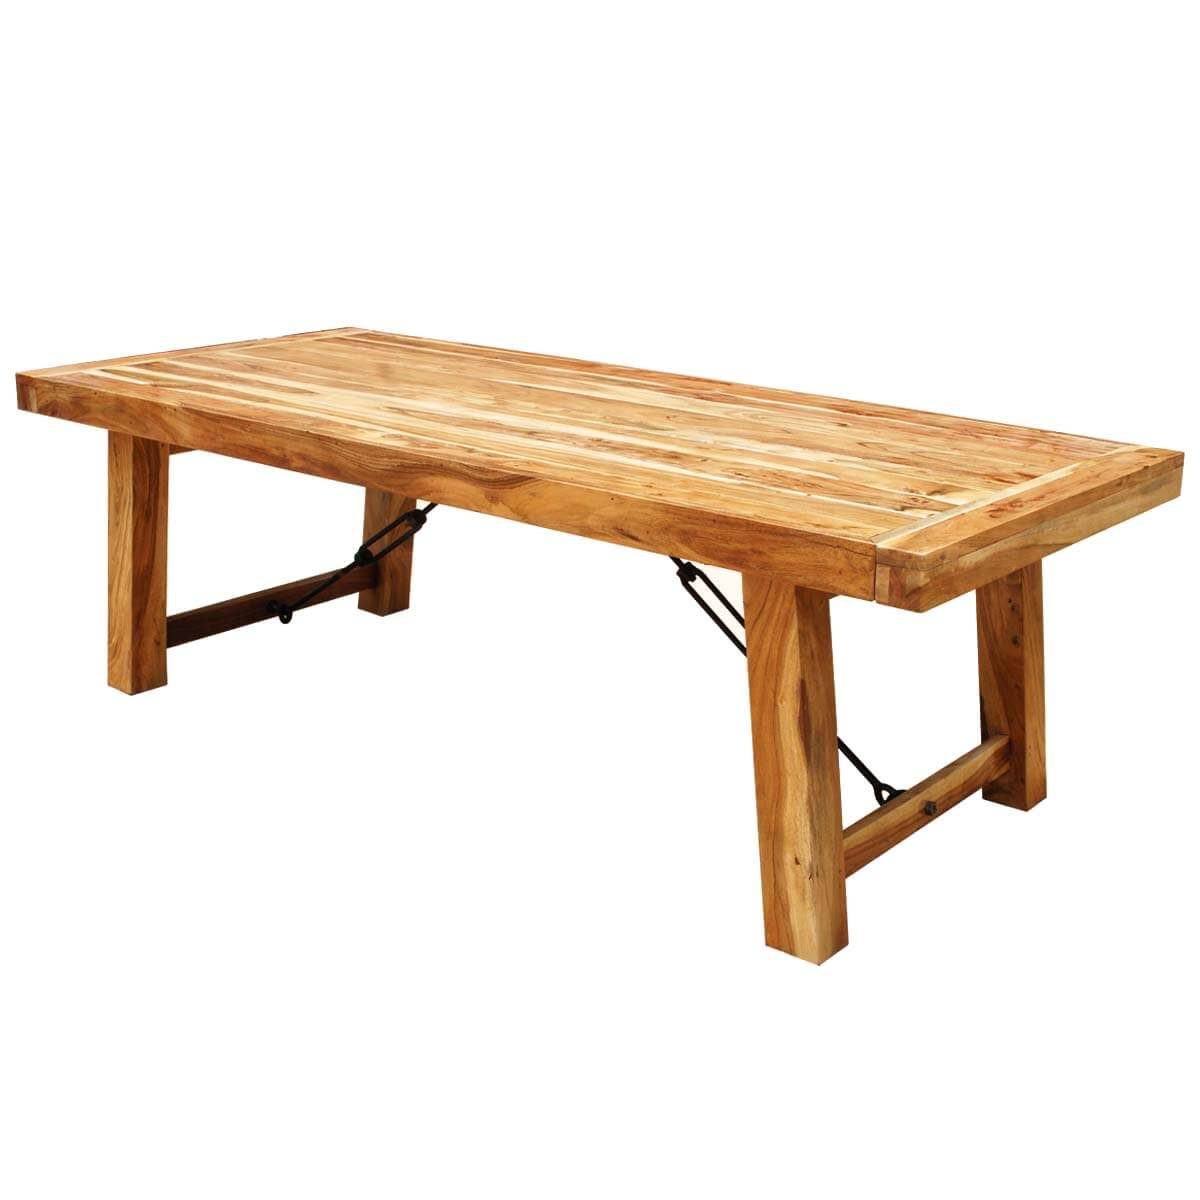 Rustic wood large santa fe dining room table w extensions for Large dining room table